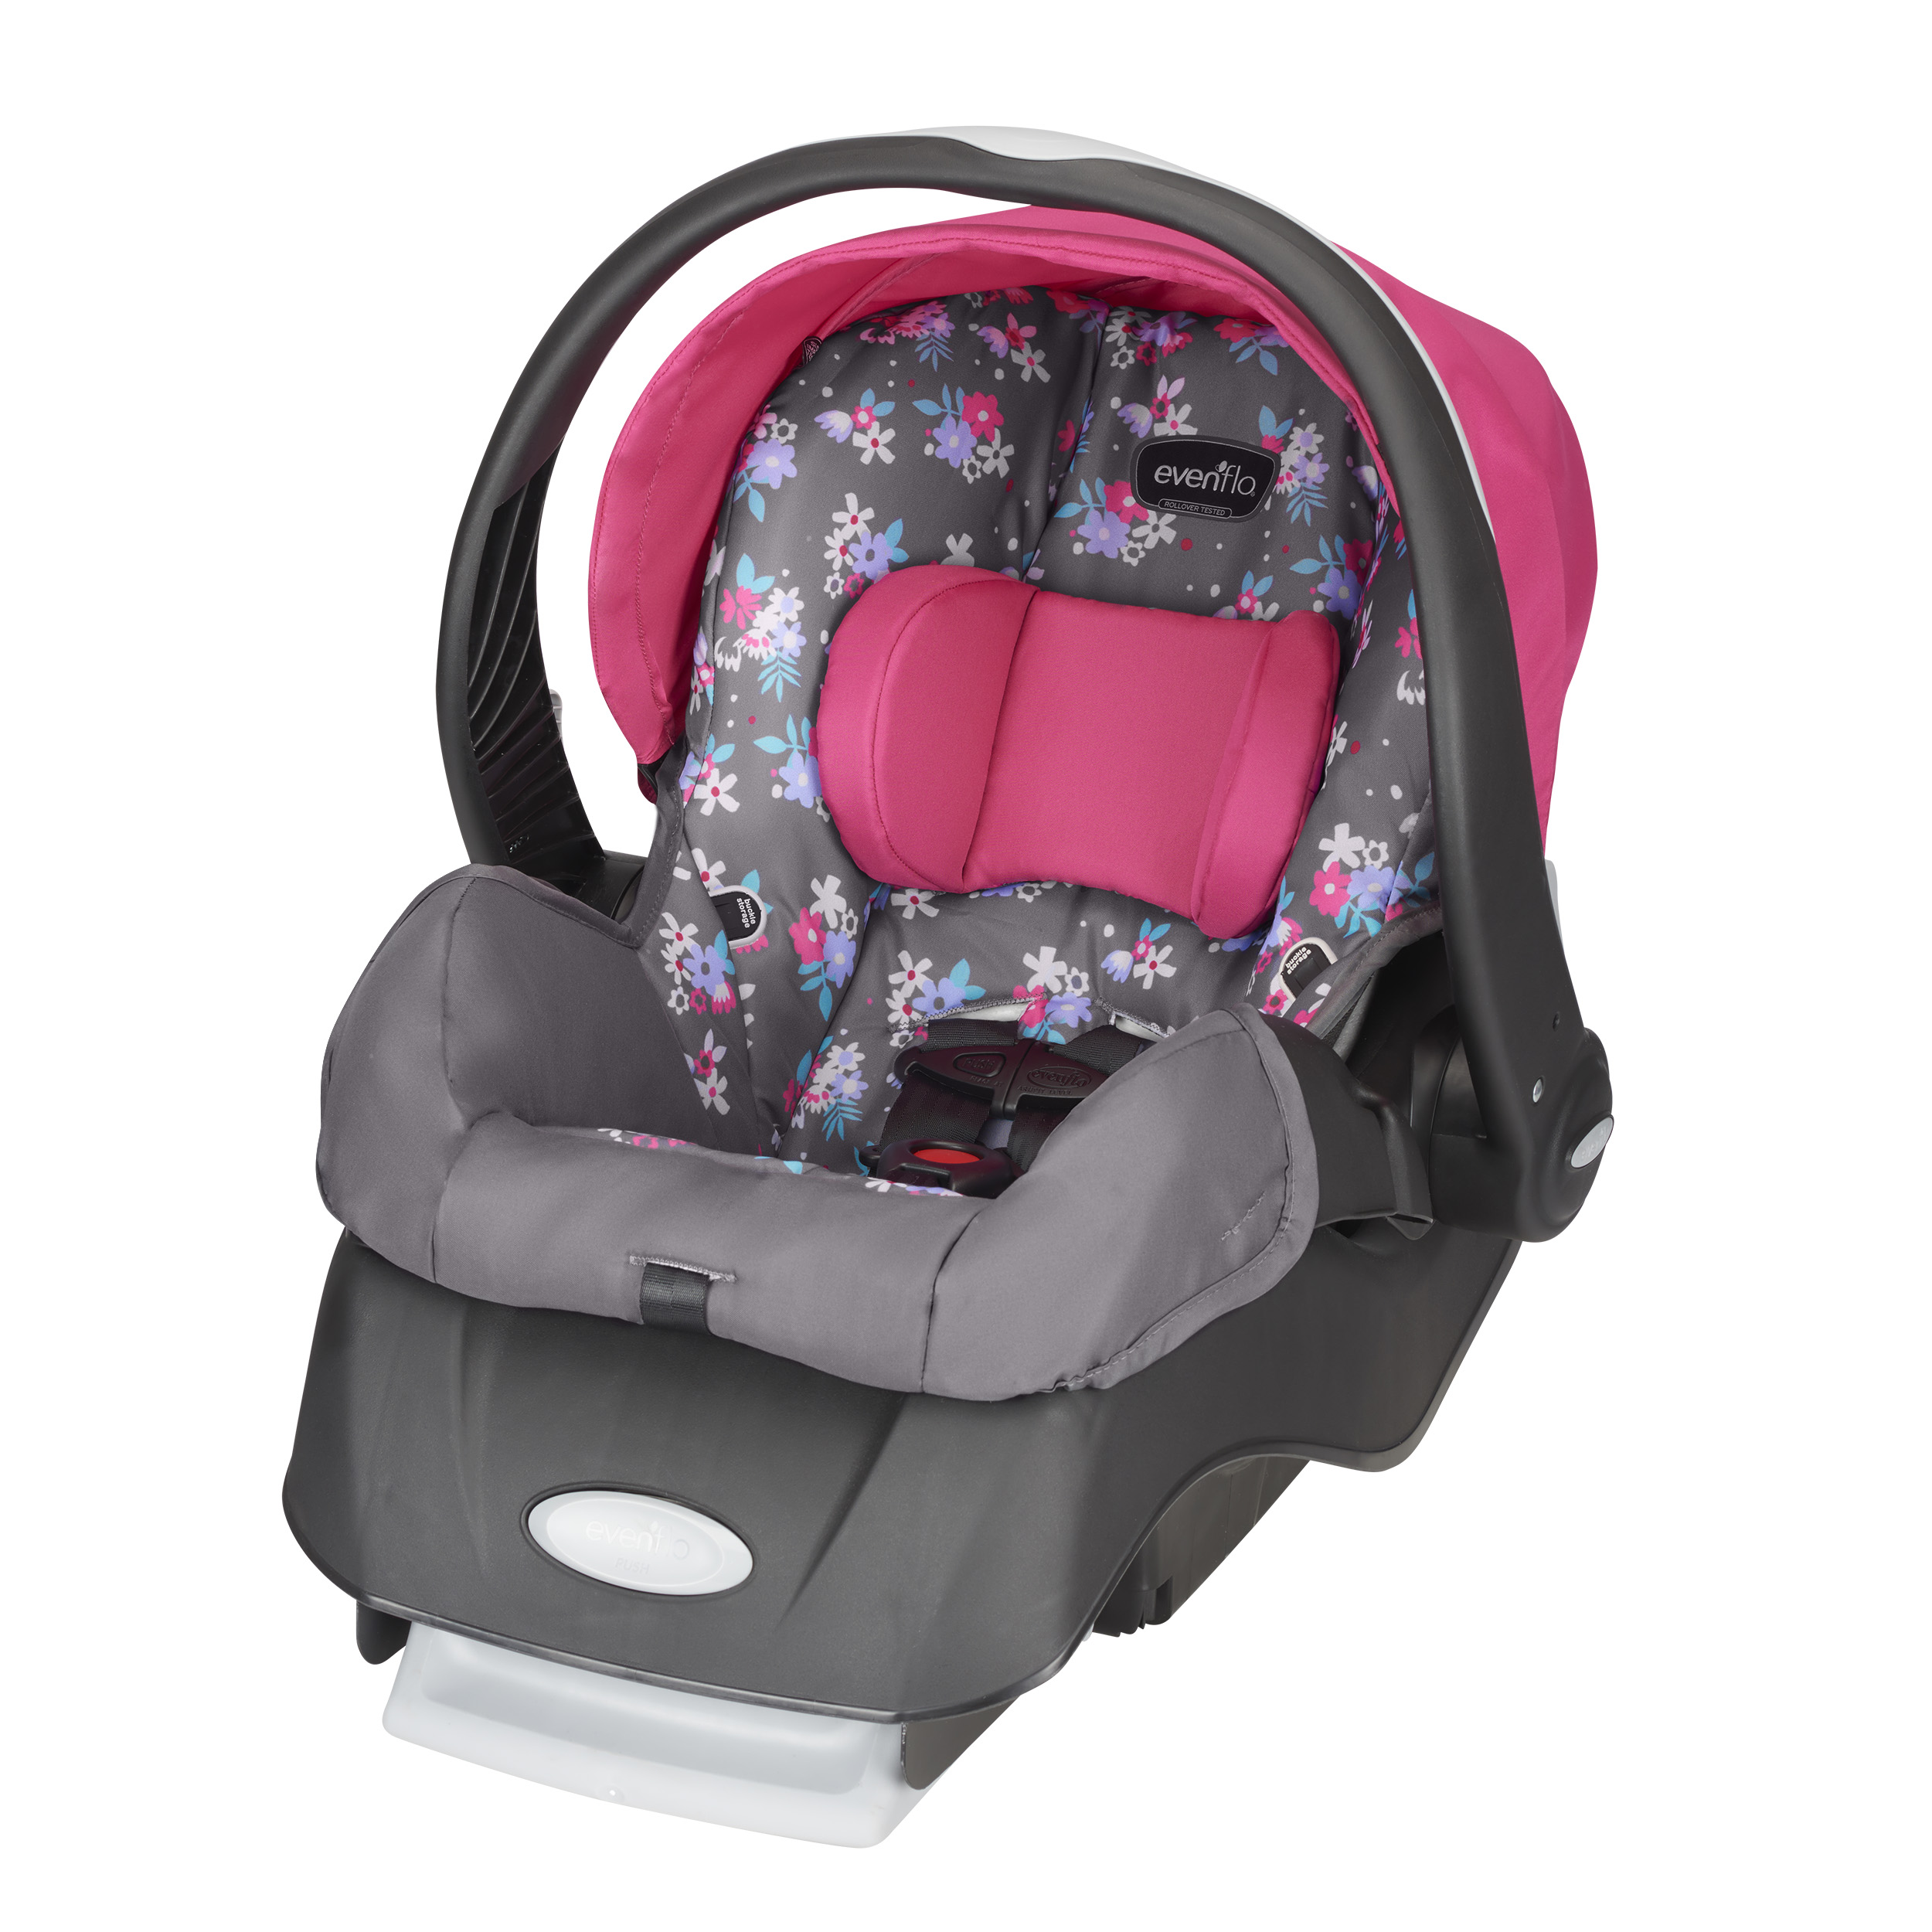 Evenflo Embrace Select Infant Car Seat, Blossom